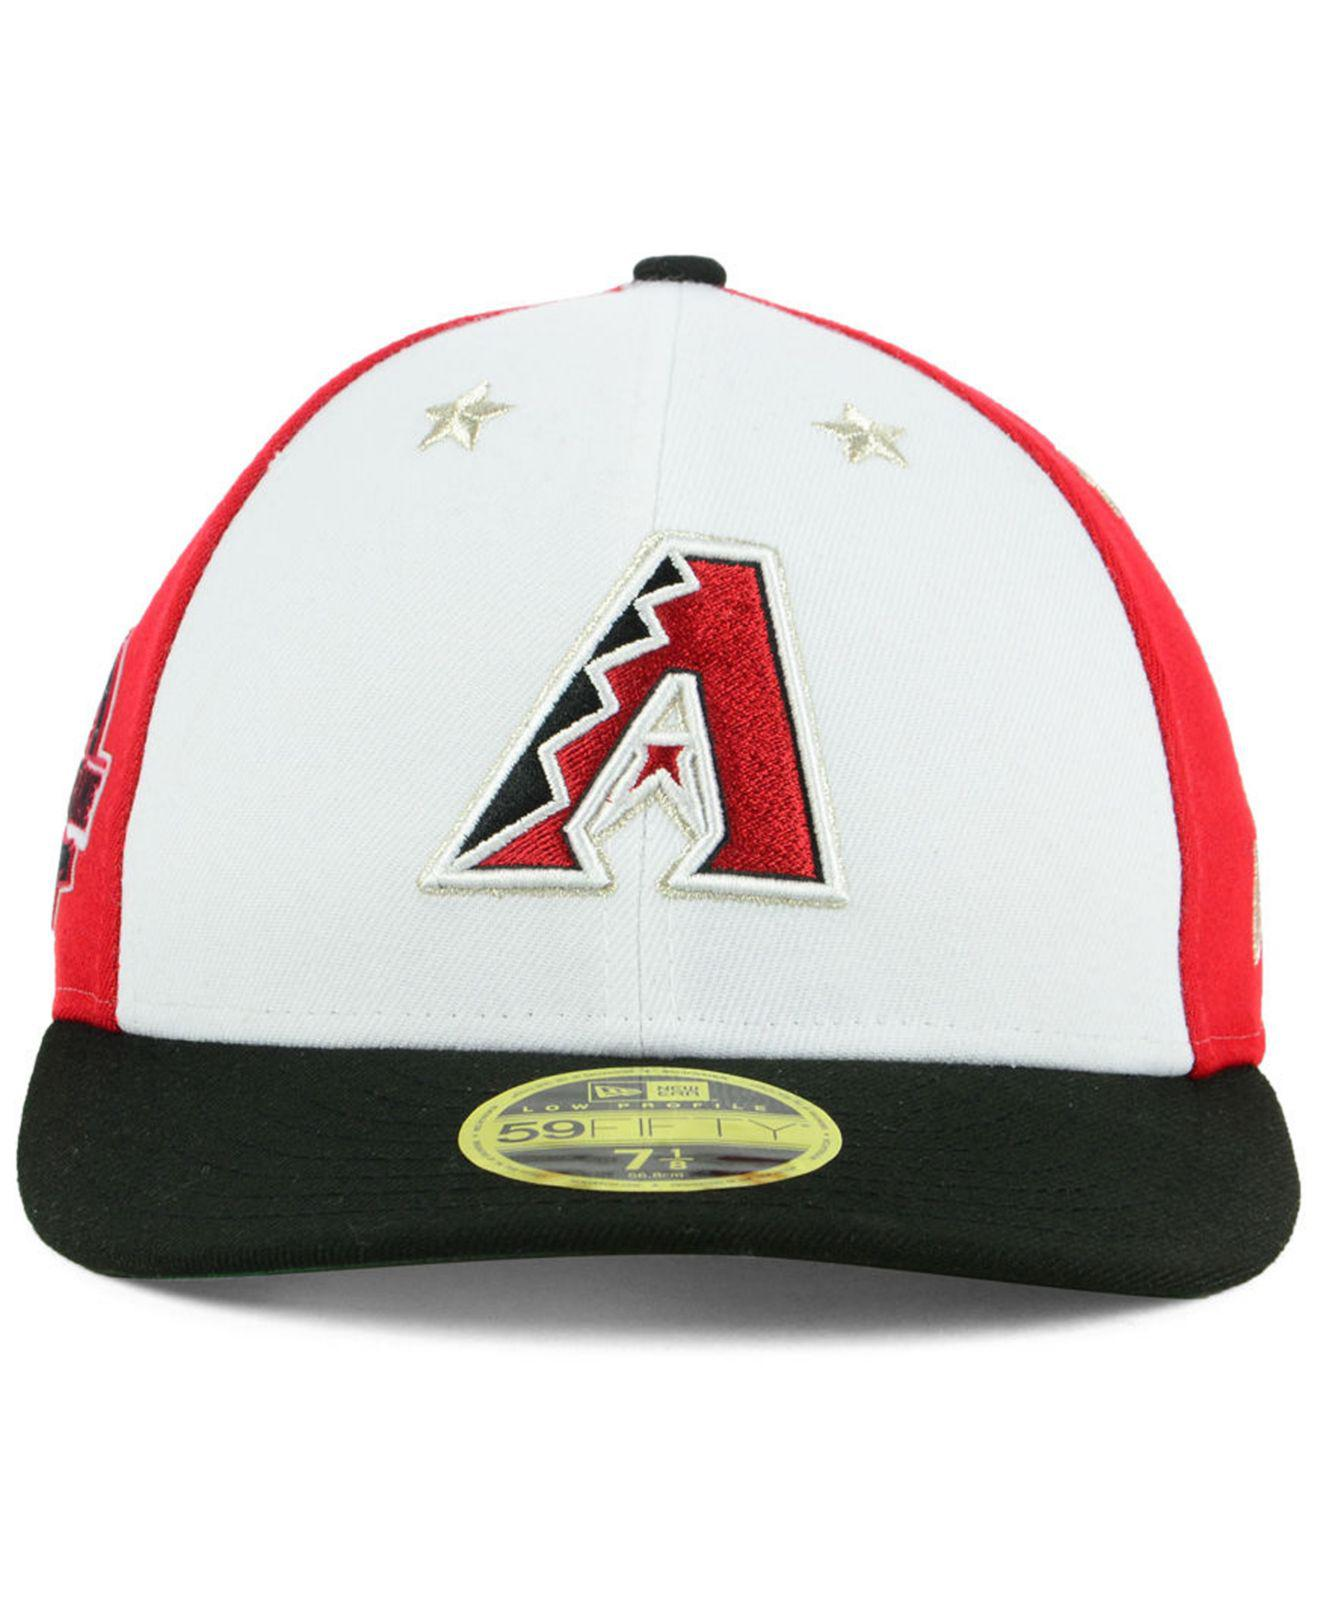 buy online 5fc64 ec8c7 Lyst - KTZ Arizona Diamondbacks All Star Game Patch Low Profile 59fifty  Fitted Cap 2018 for Men